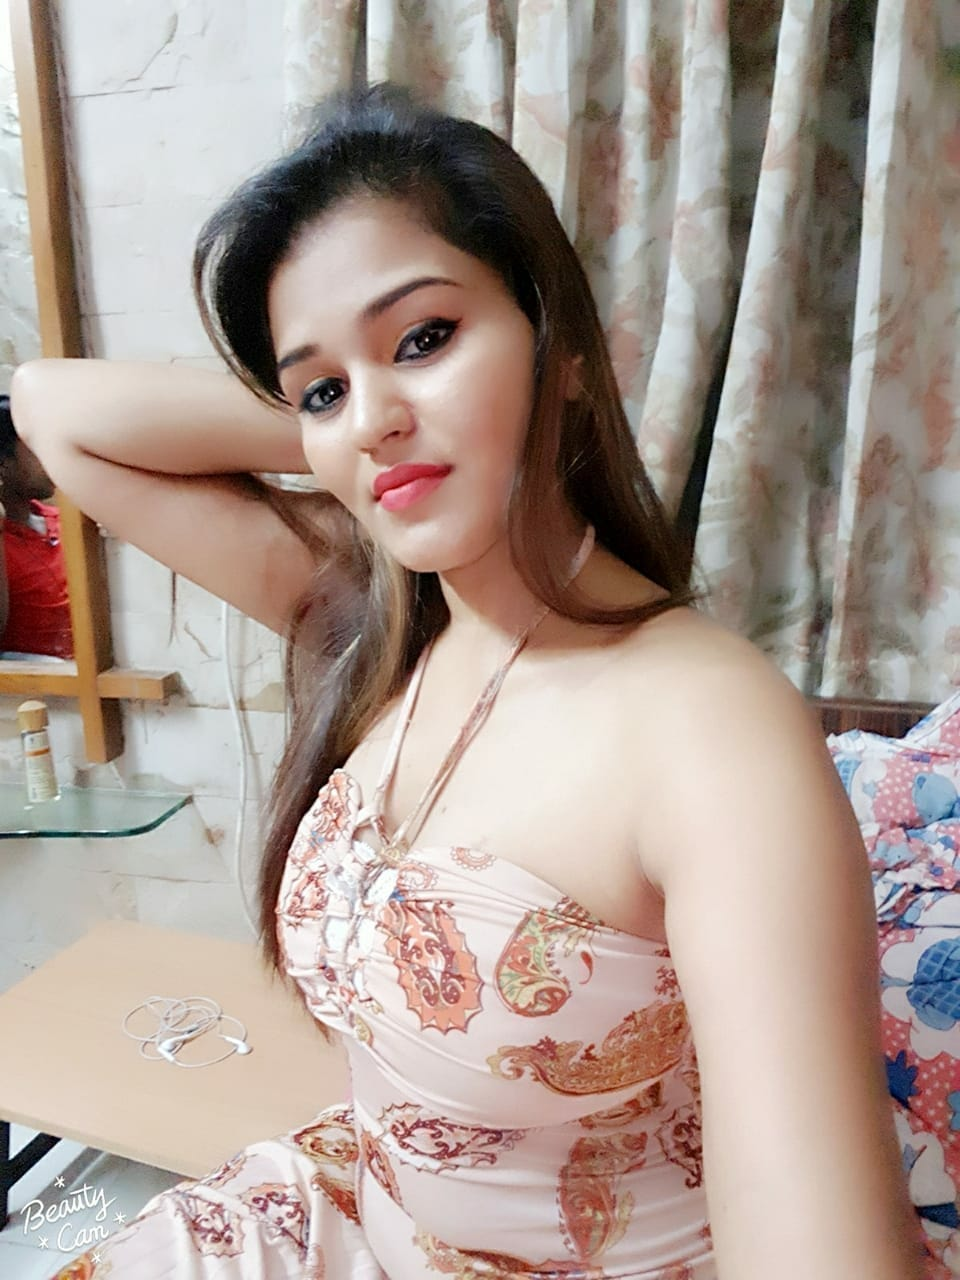 Airhostess Escorts In  Kala Ghoda